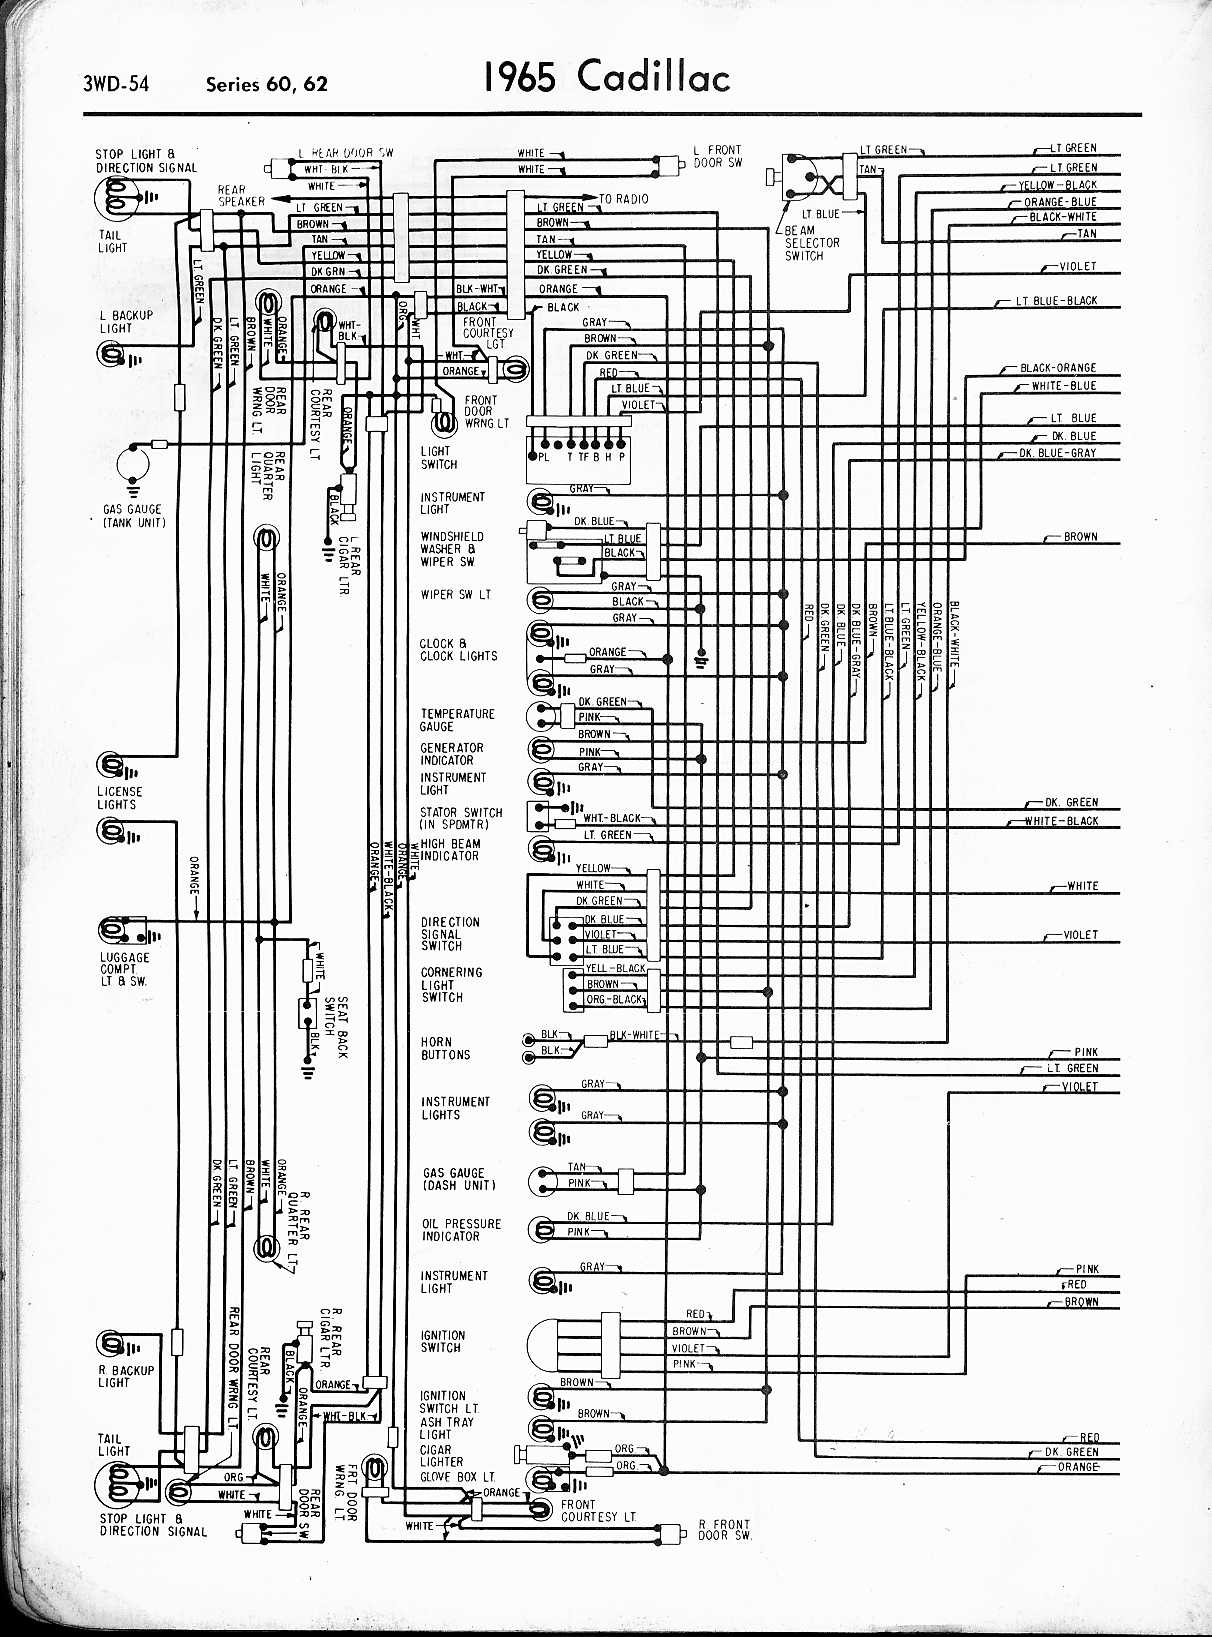 Wiring Diagram For 2002 Cadillac Deville 1964 Opinions About Diagrams 1957 1965 Rh Oldcarmanualproject Com 1968 93